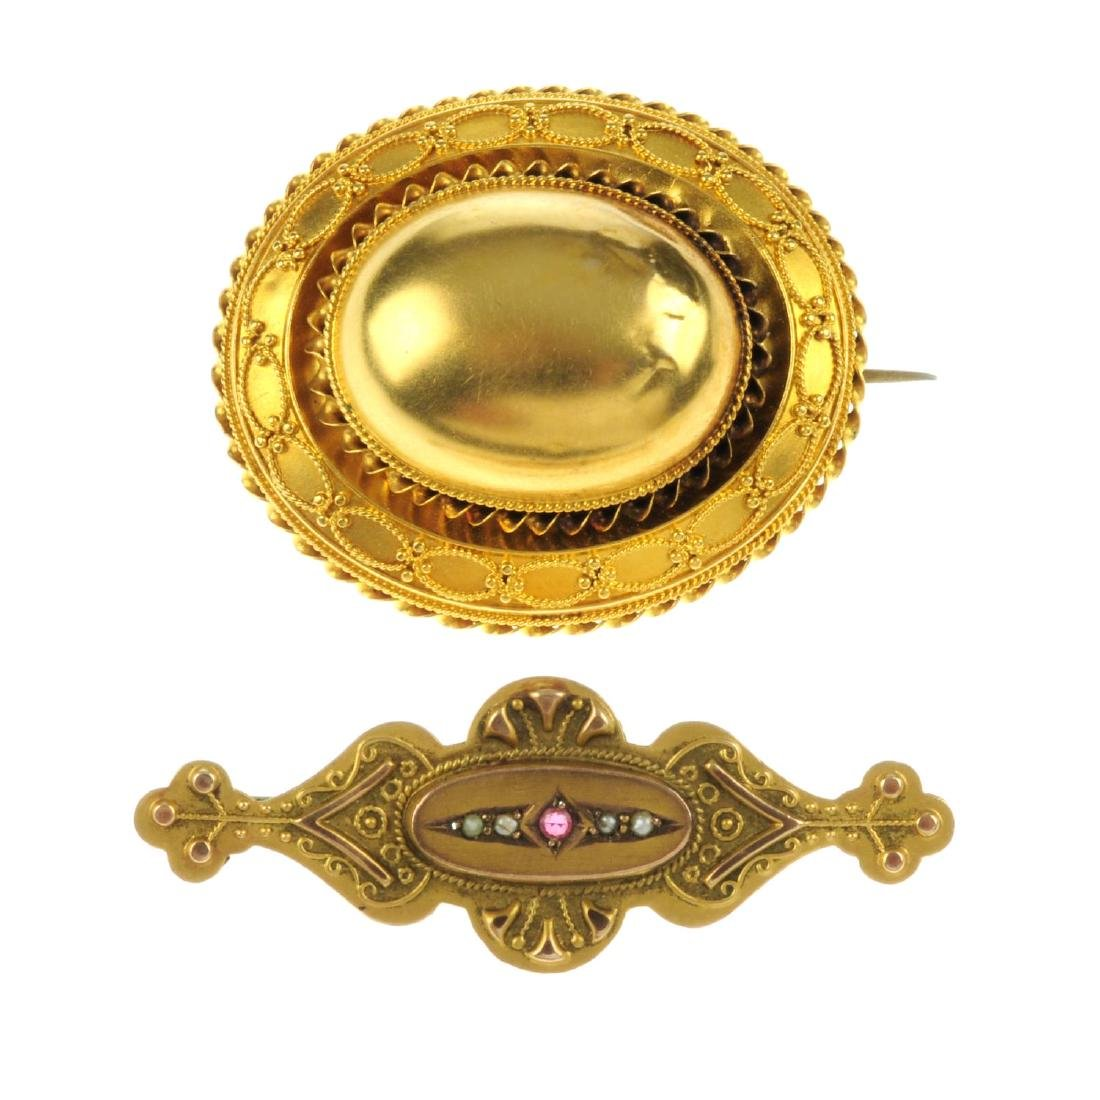 Two late 19th to early 20th century brooches. The first